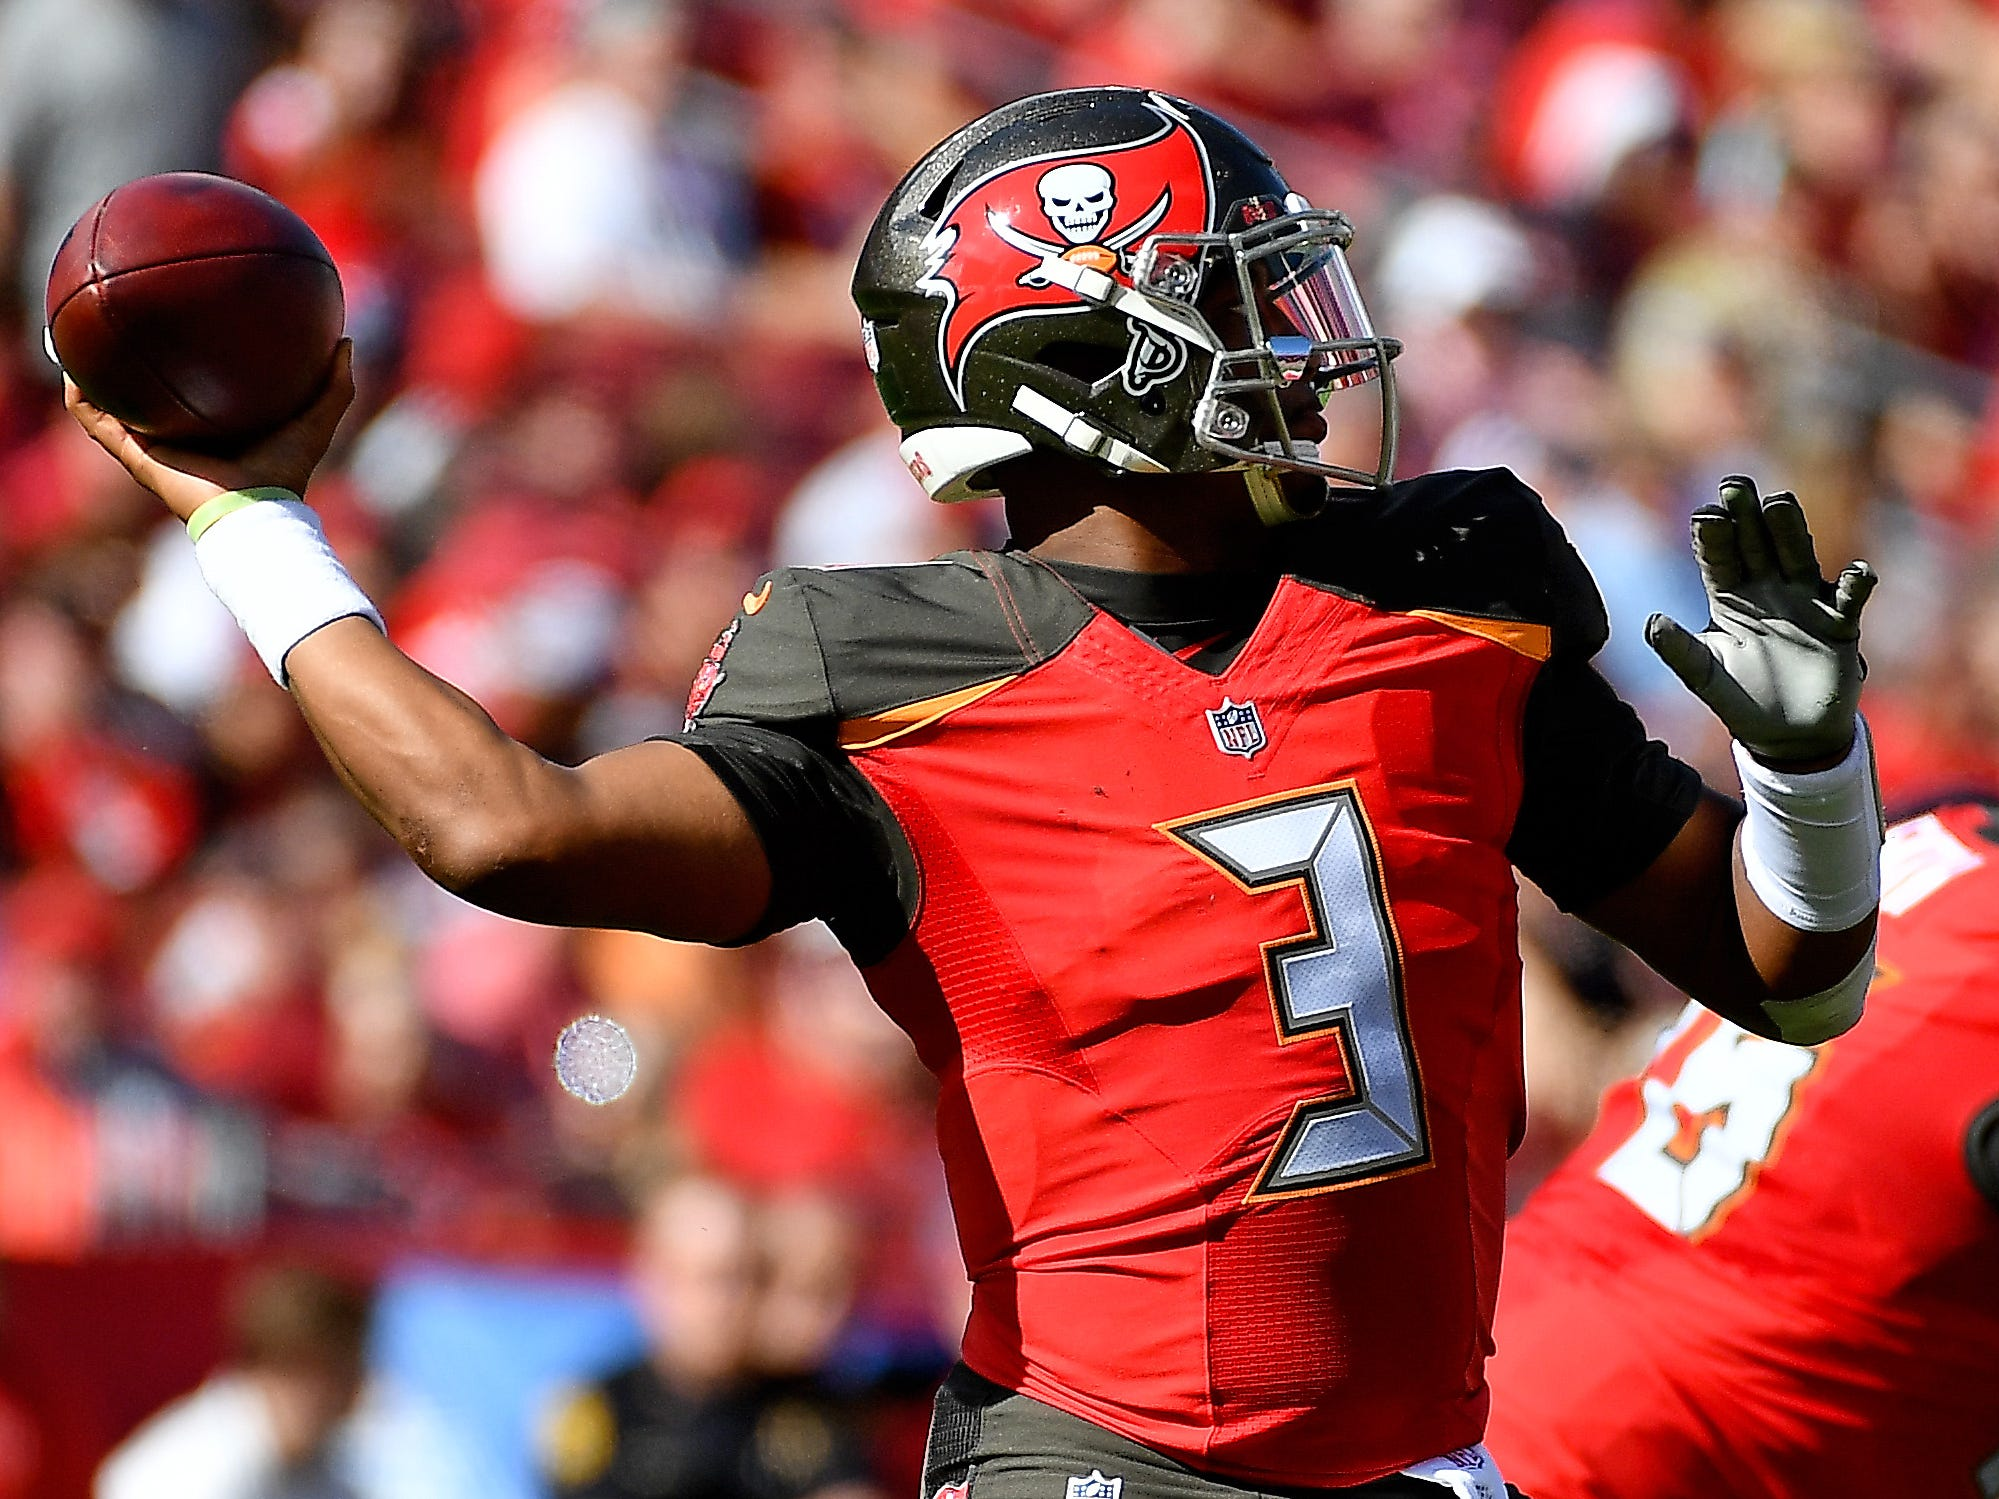 21. Buccaneers (16): Bruce Arians must be uber-confident he can win with Jameis Winston, because team hasn't added much offensively in 2019 – aside from Arians.